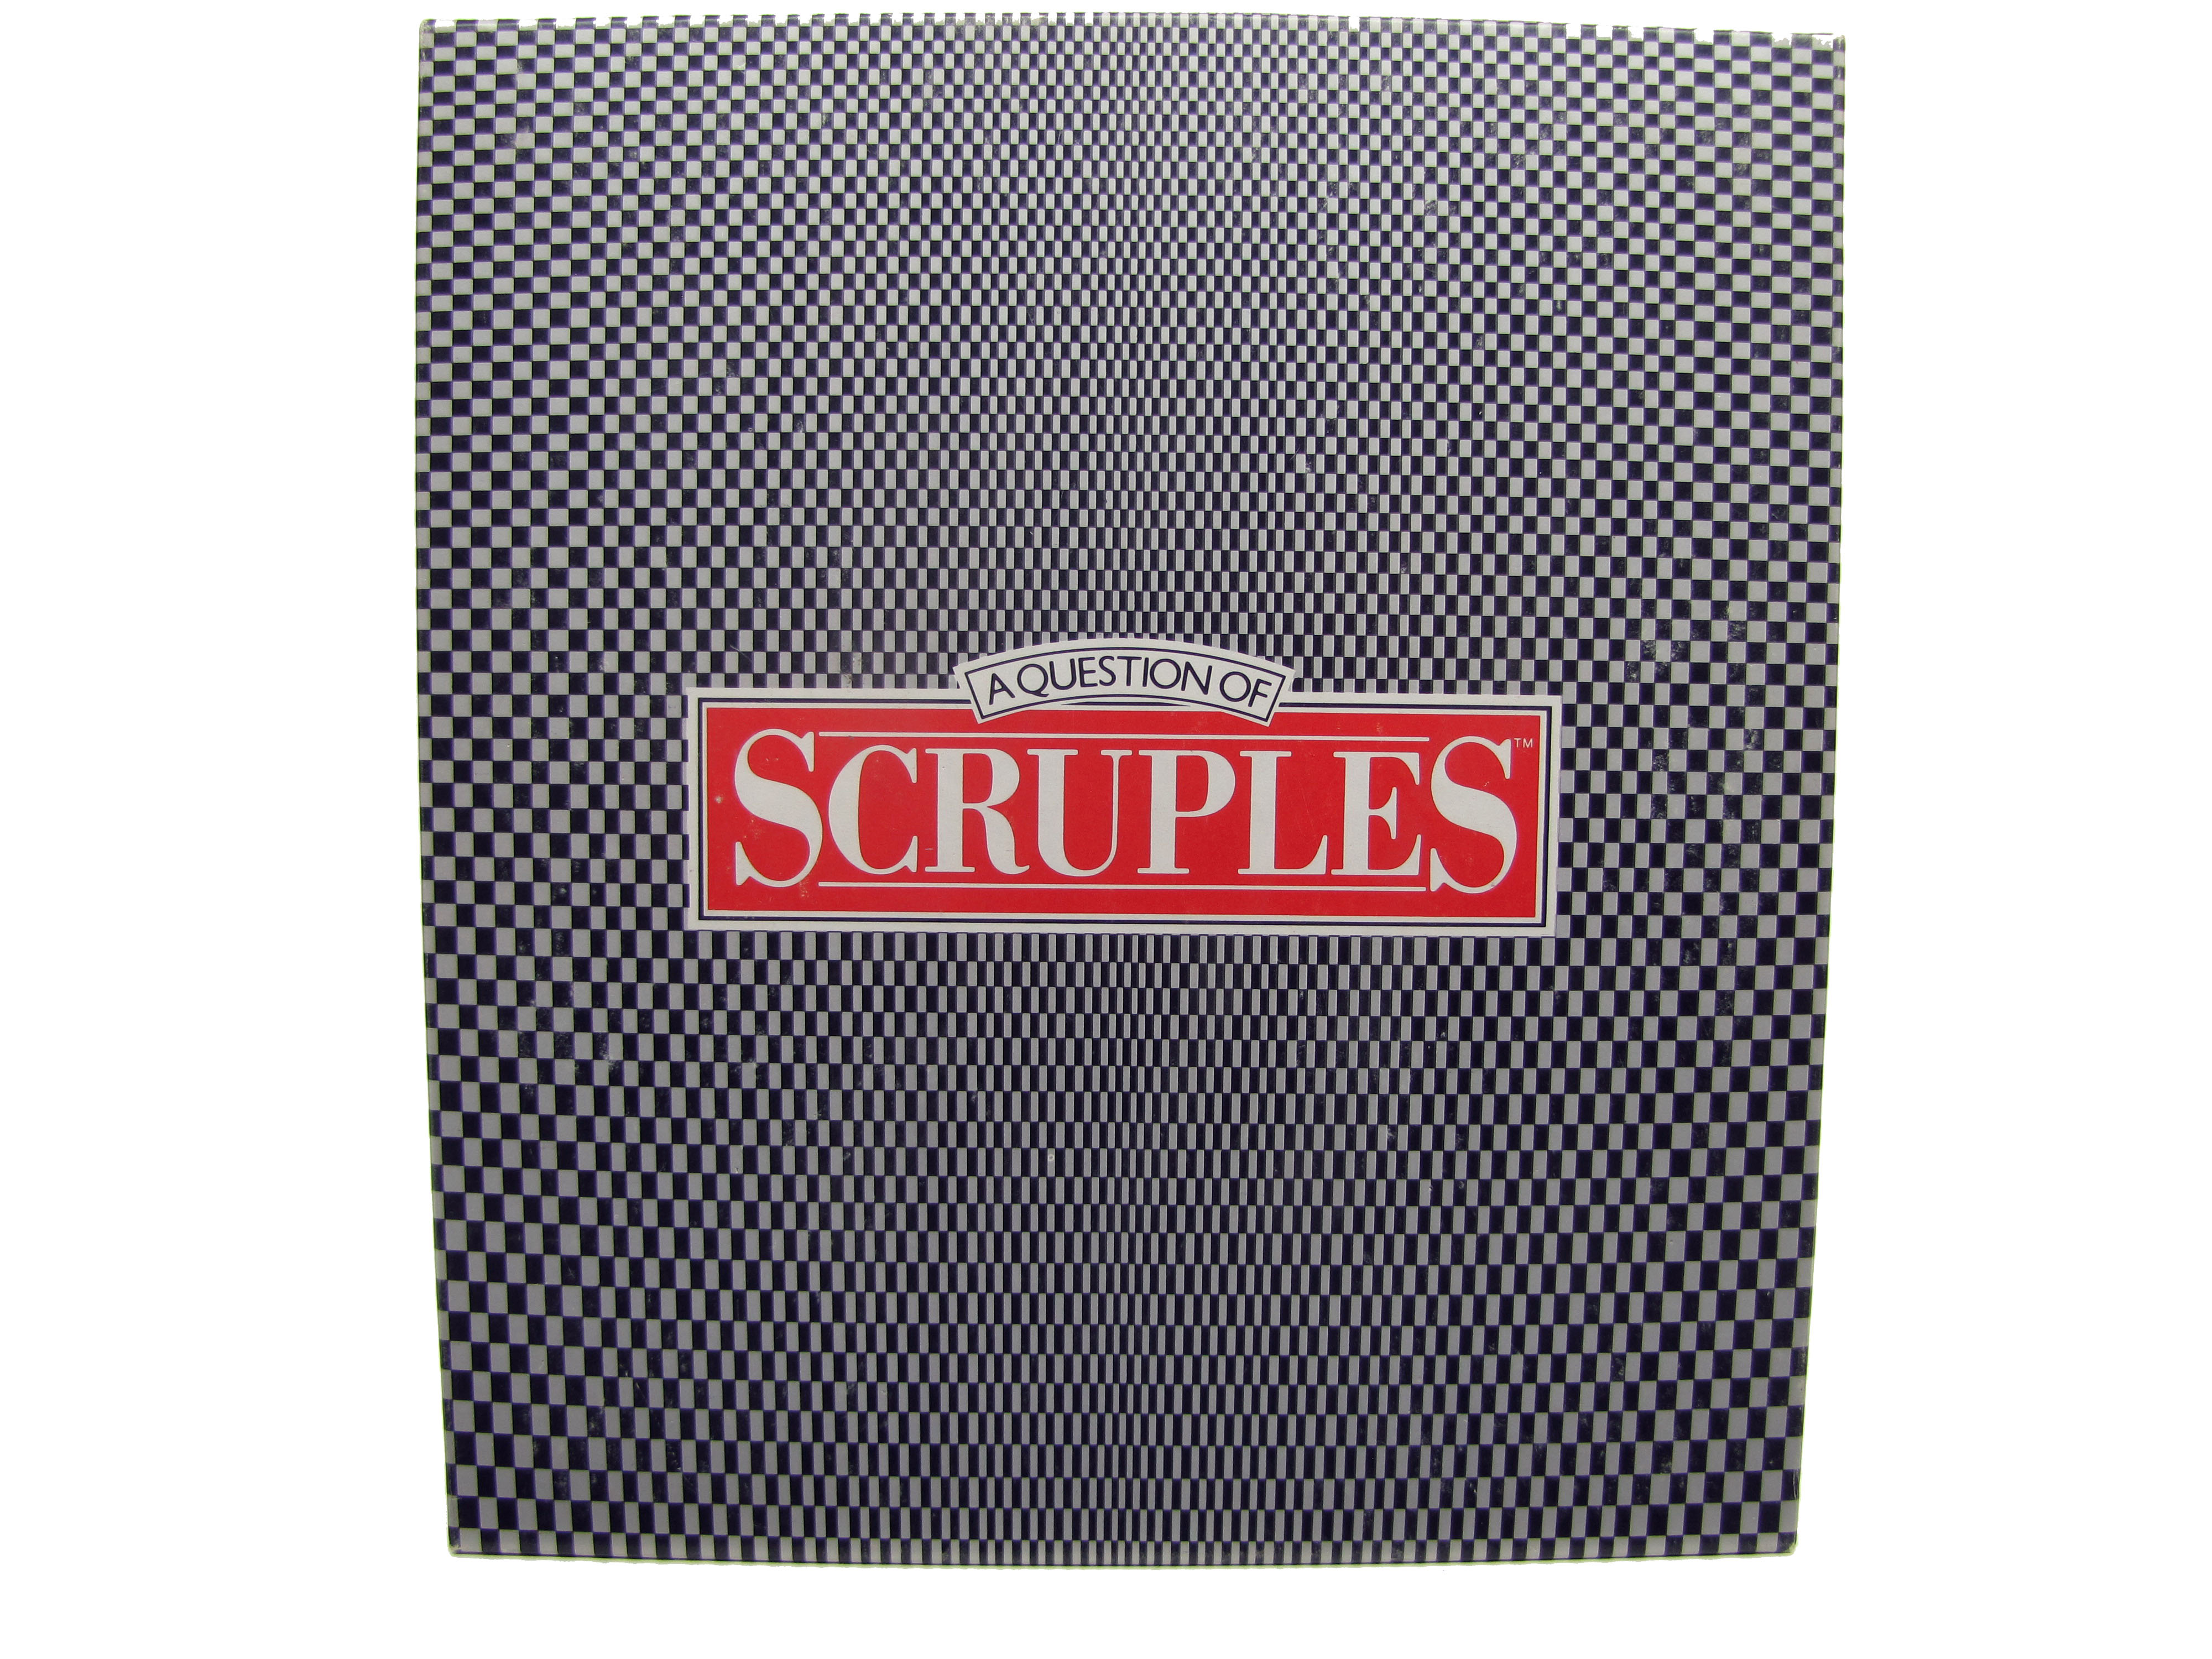 1986 Milton Bradley A Question of Scruples Board Game Complete